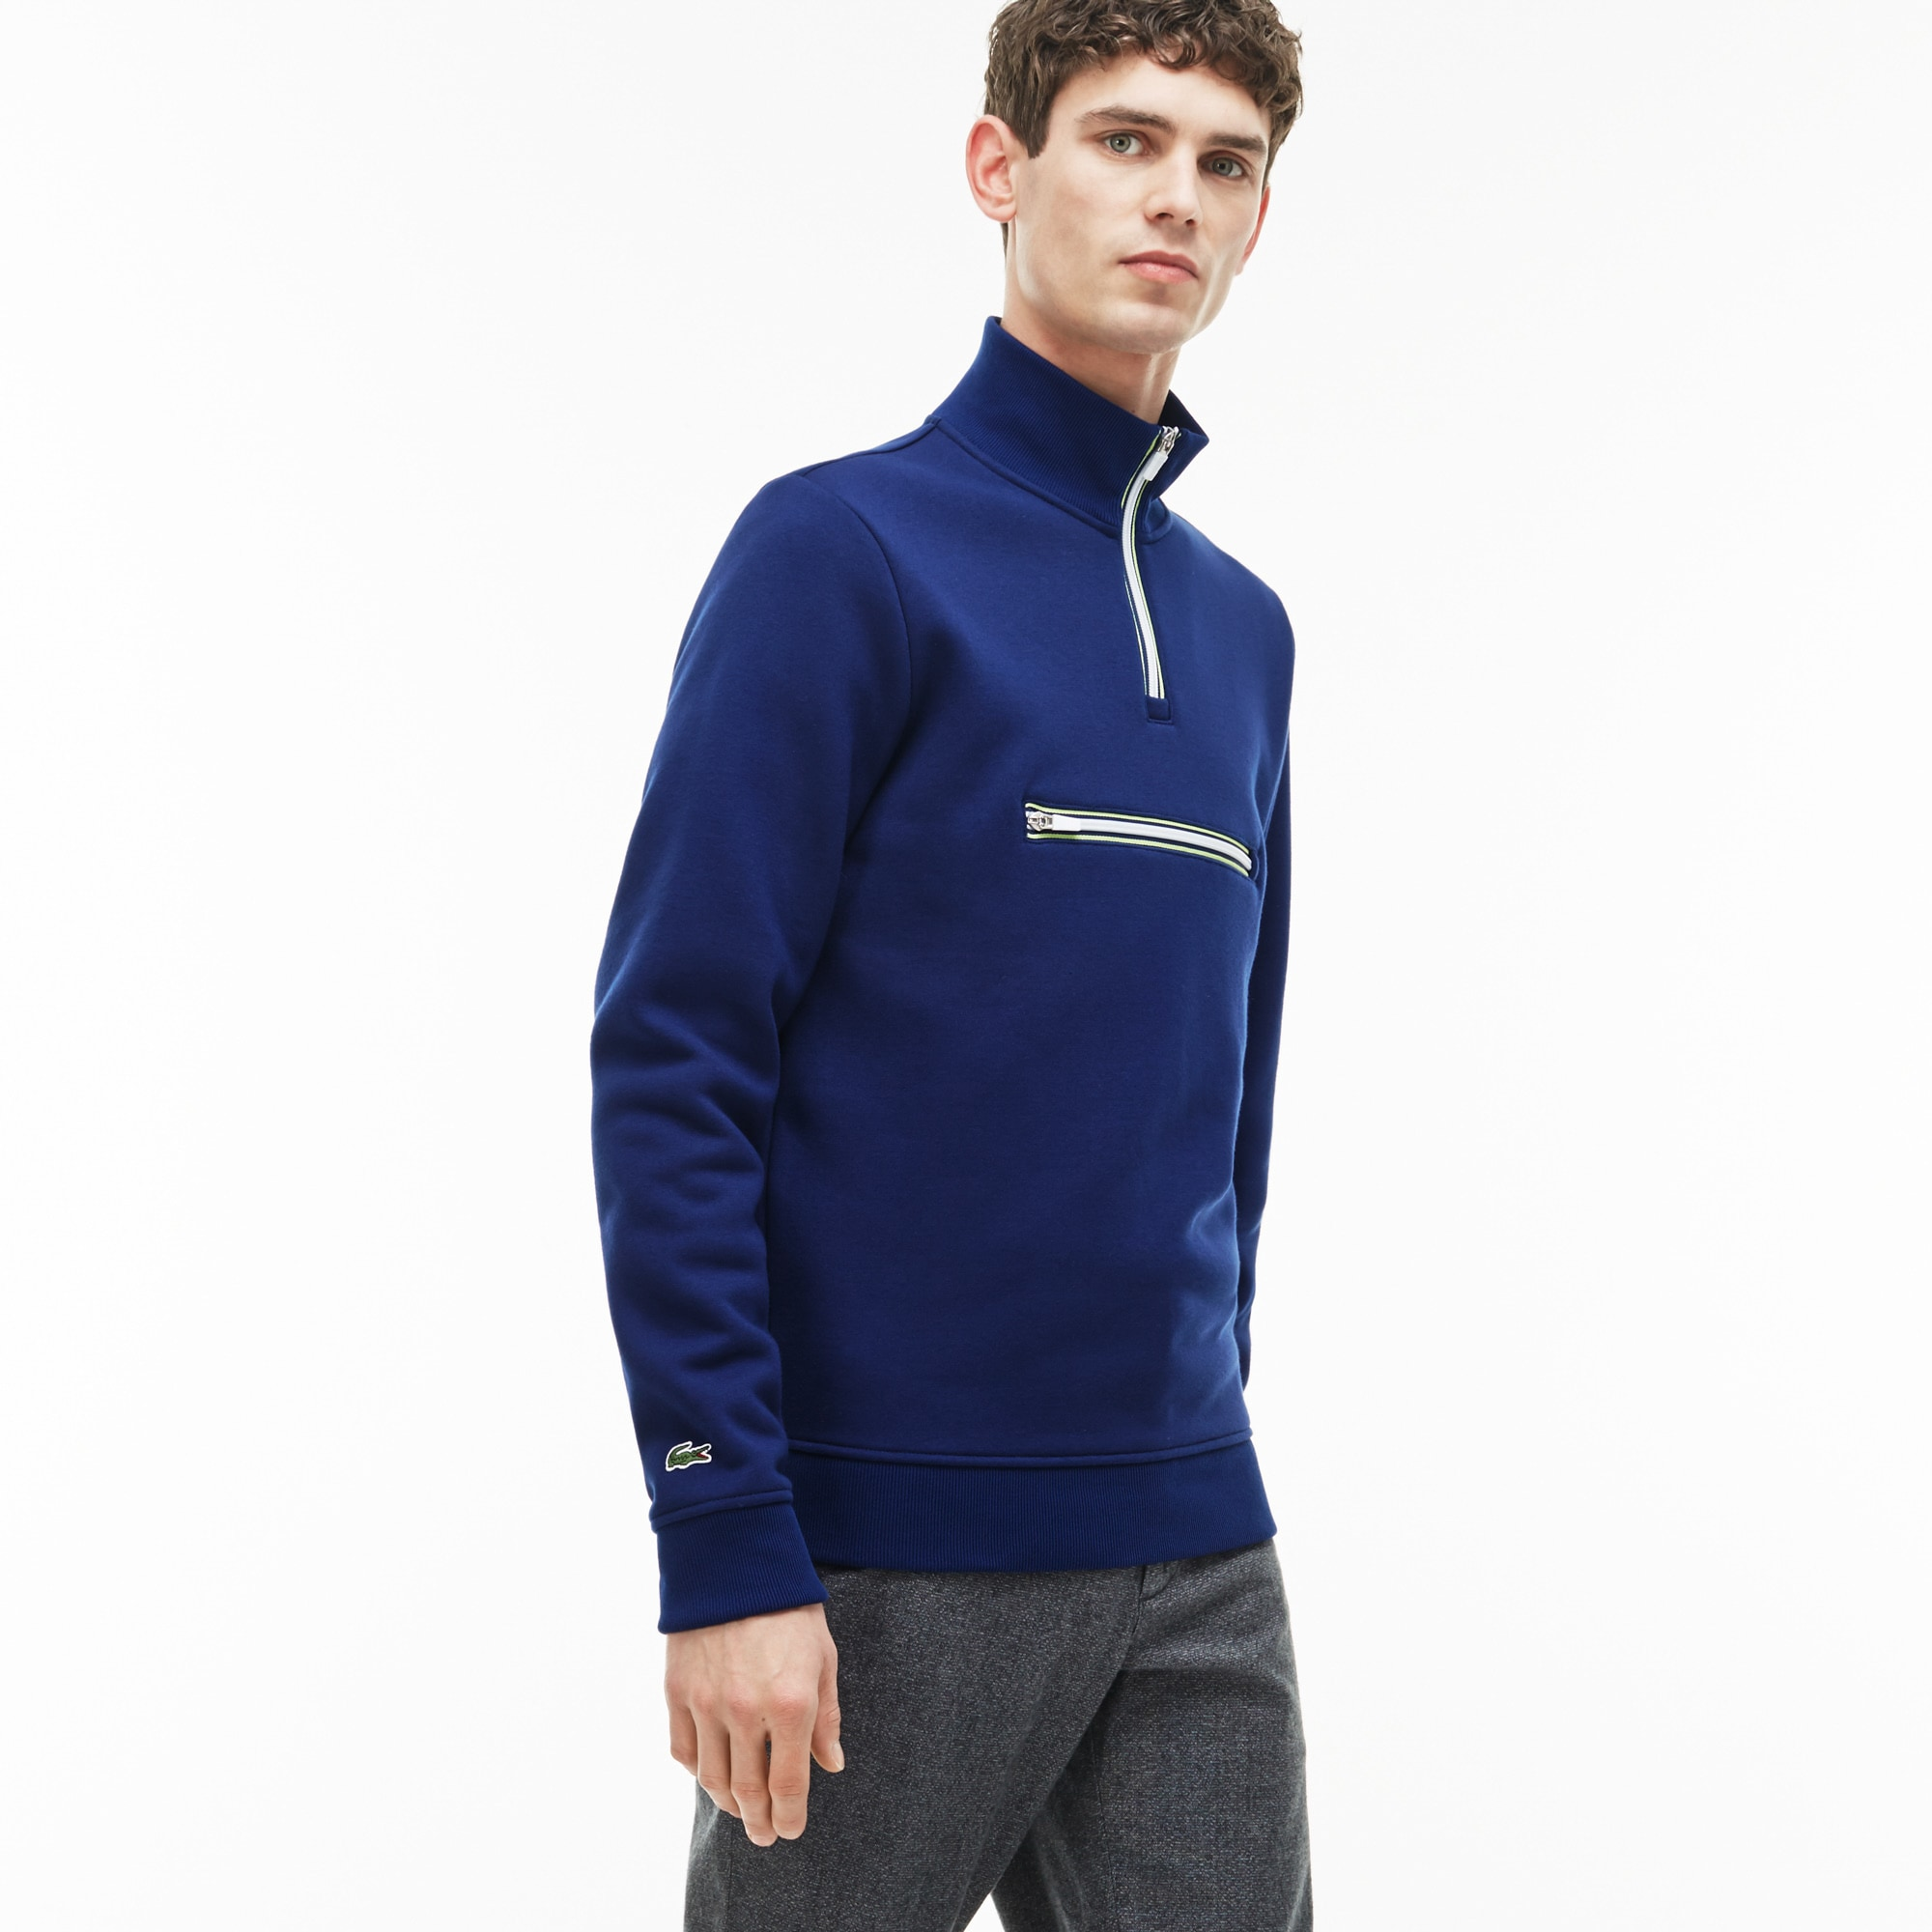 Men's Fleece Zip Stand-Up Collar Sweatshirt With Piping